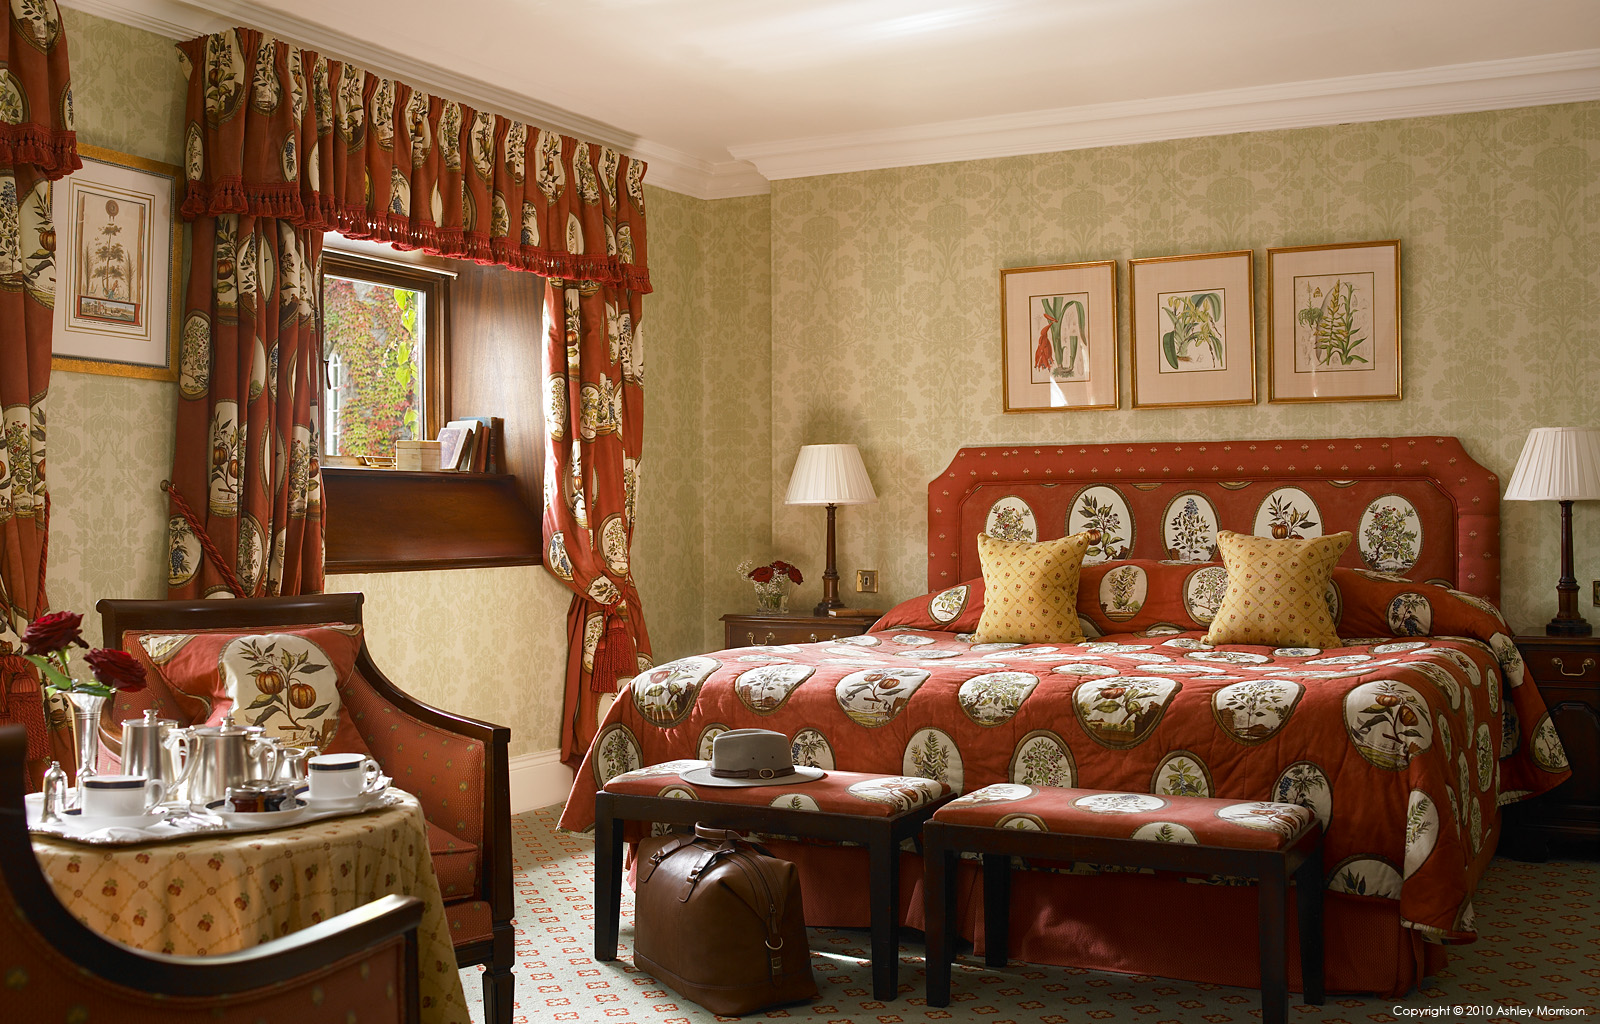 Queen ann bedroom suite at dromoland castle in county clare for Queen anne bedroom suite